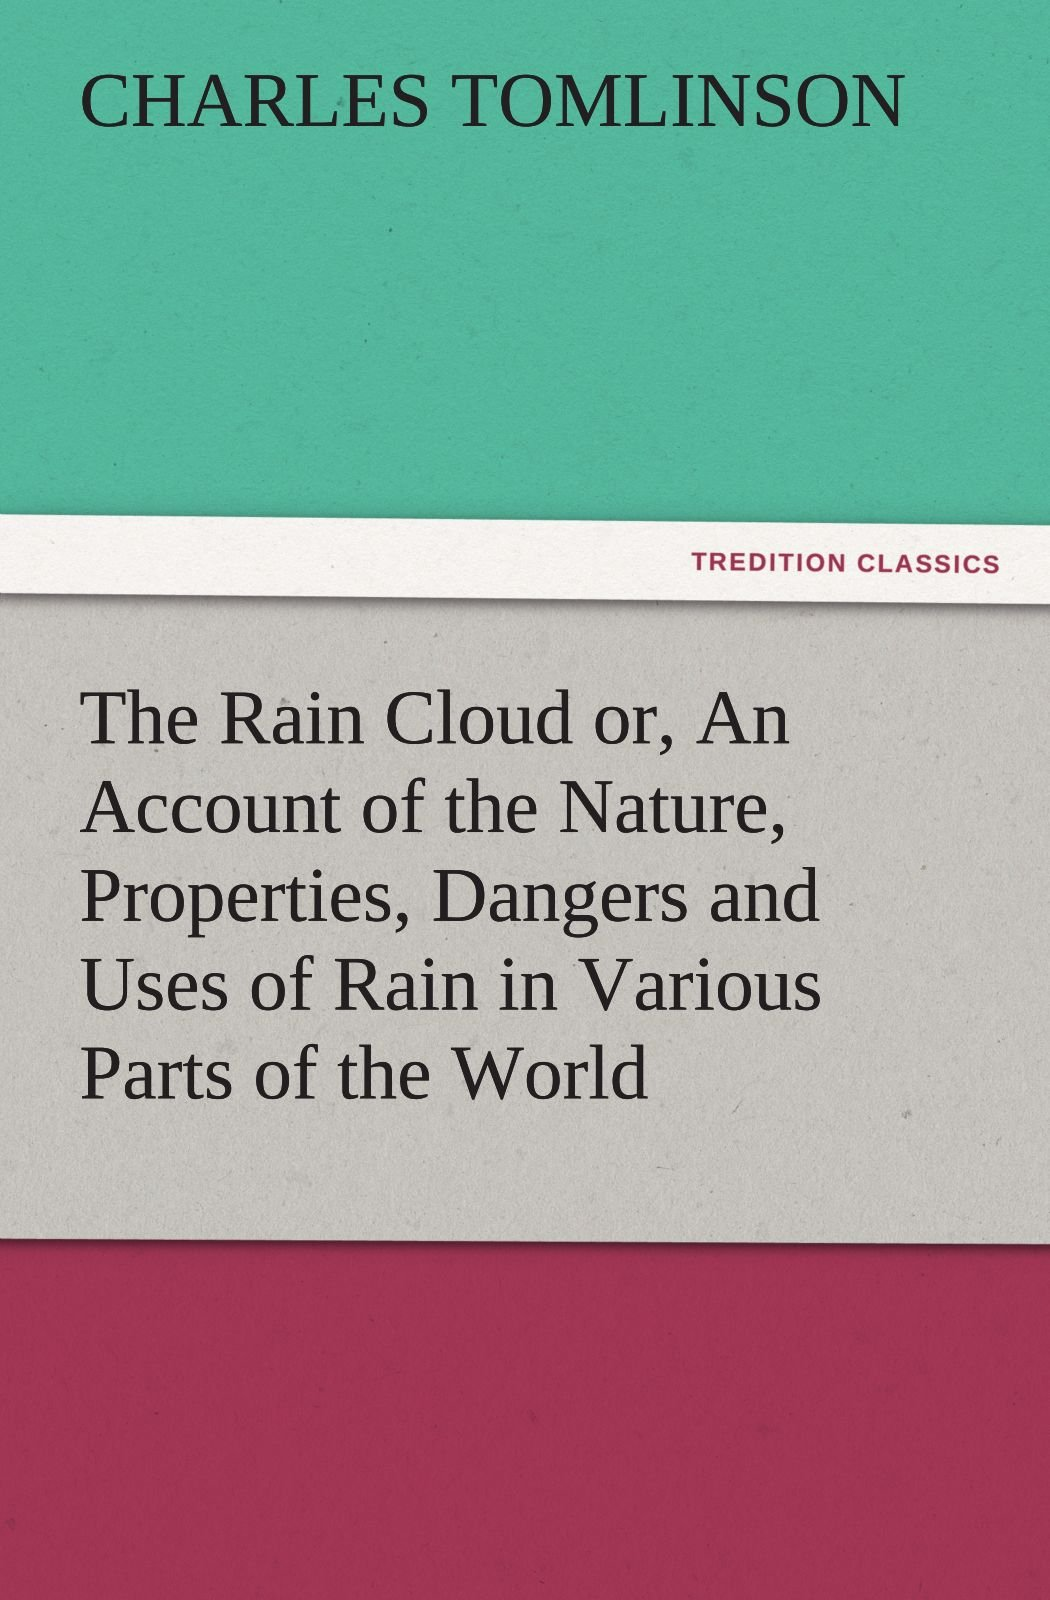 The Rain Cloud or, An Account of the Nature, Properties, Dangers and Uses of Rain in Various Parts of the World (TREDITION CLASSICS) PDF